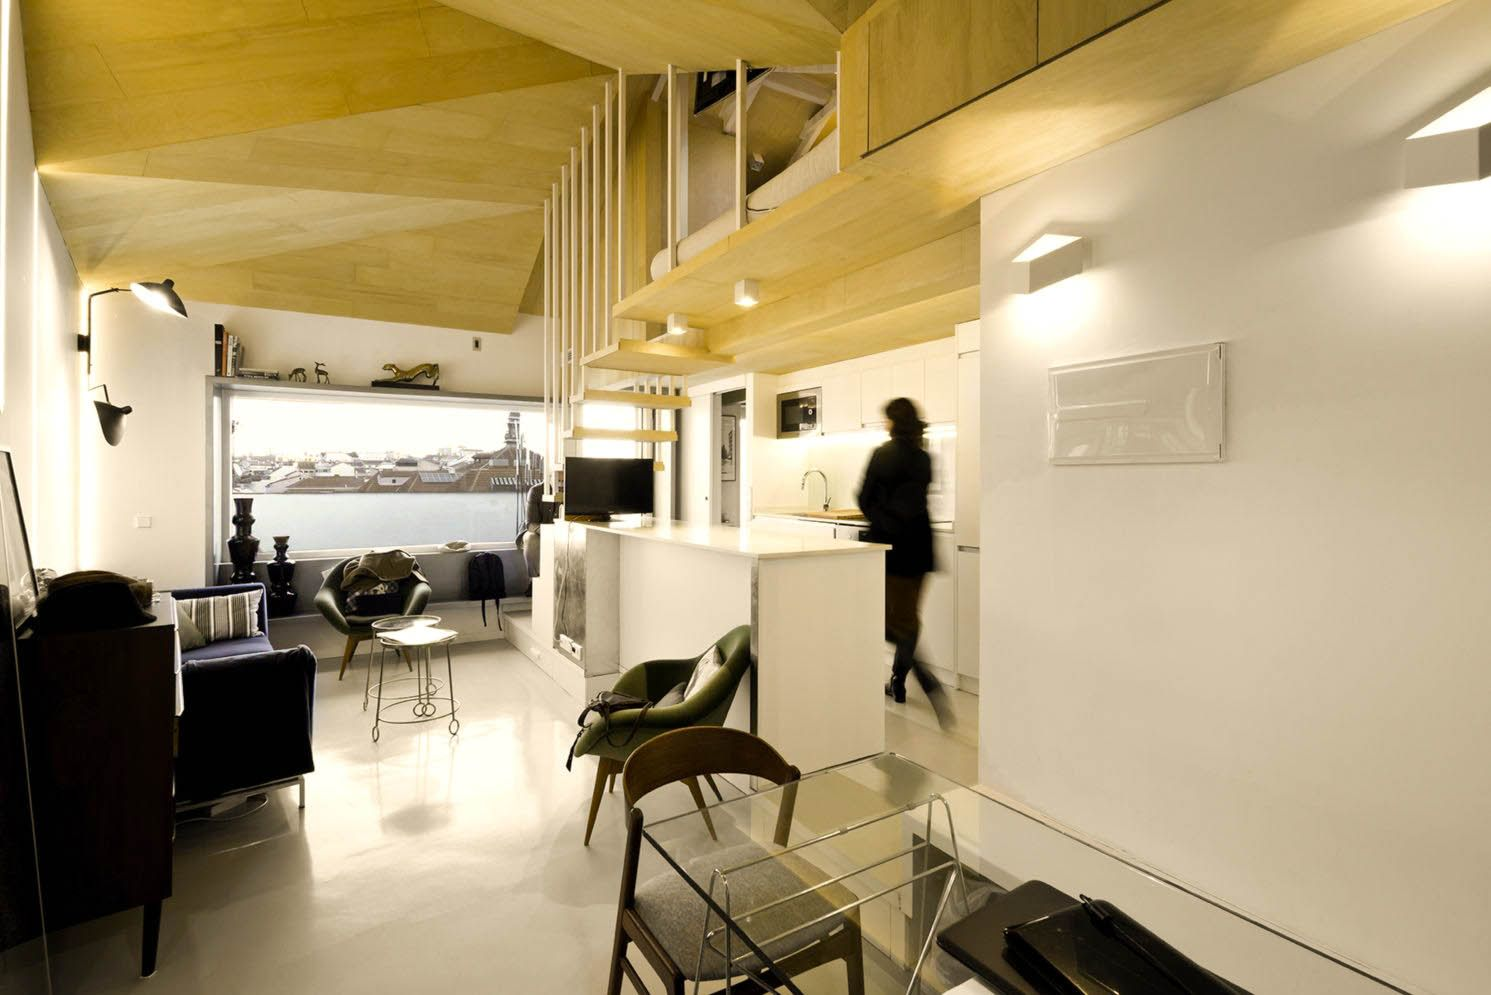 Amazing kitchen arrangement that simple and functional space from attic ronovation in Madrid MULTIPLYING ARCHITECTURES (III) Duplicated Renovation (4)